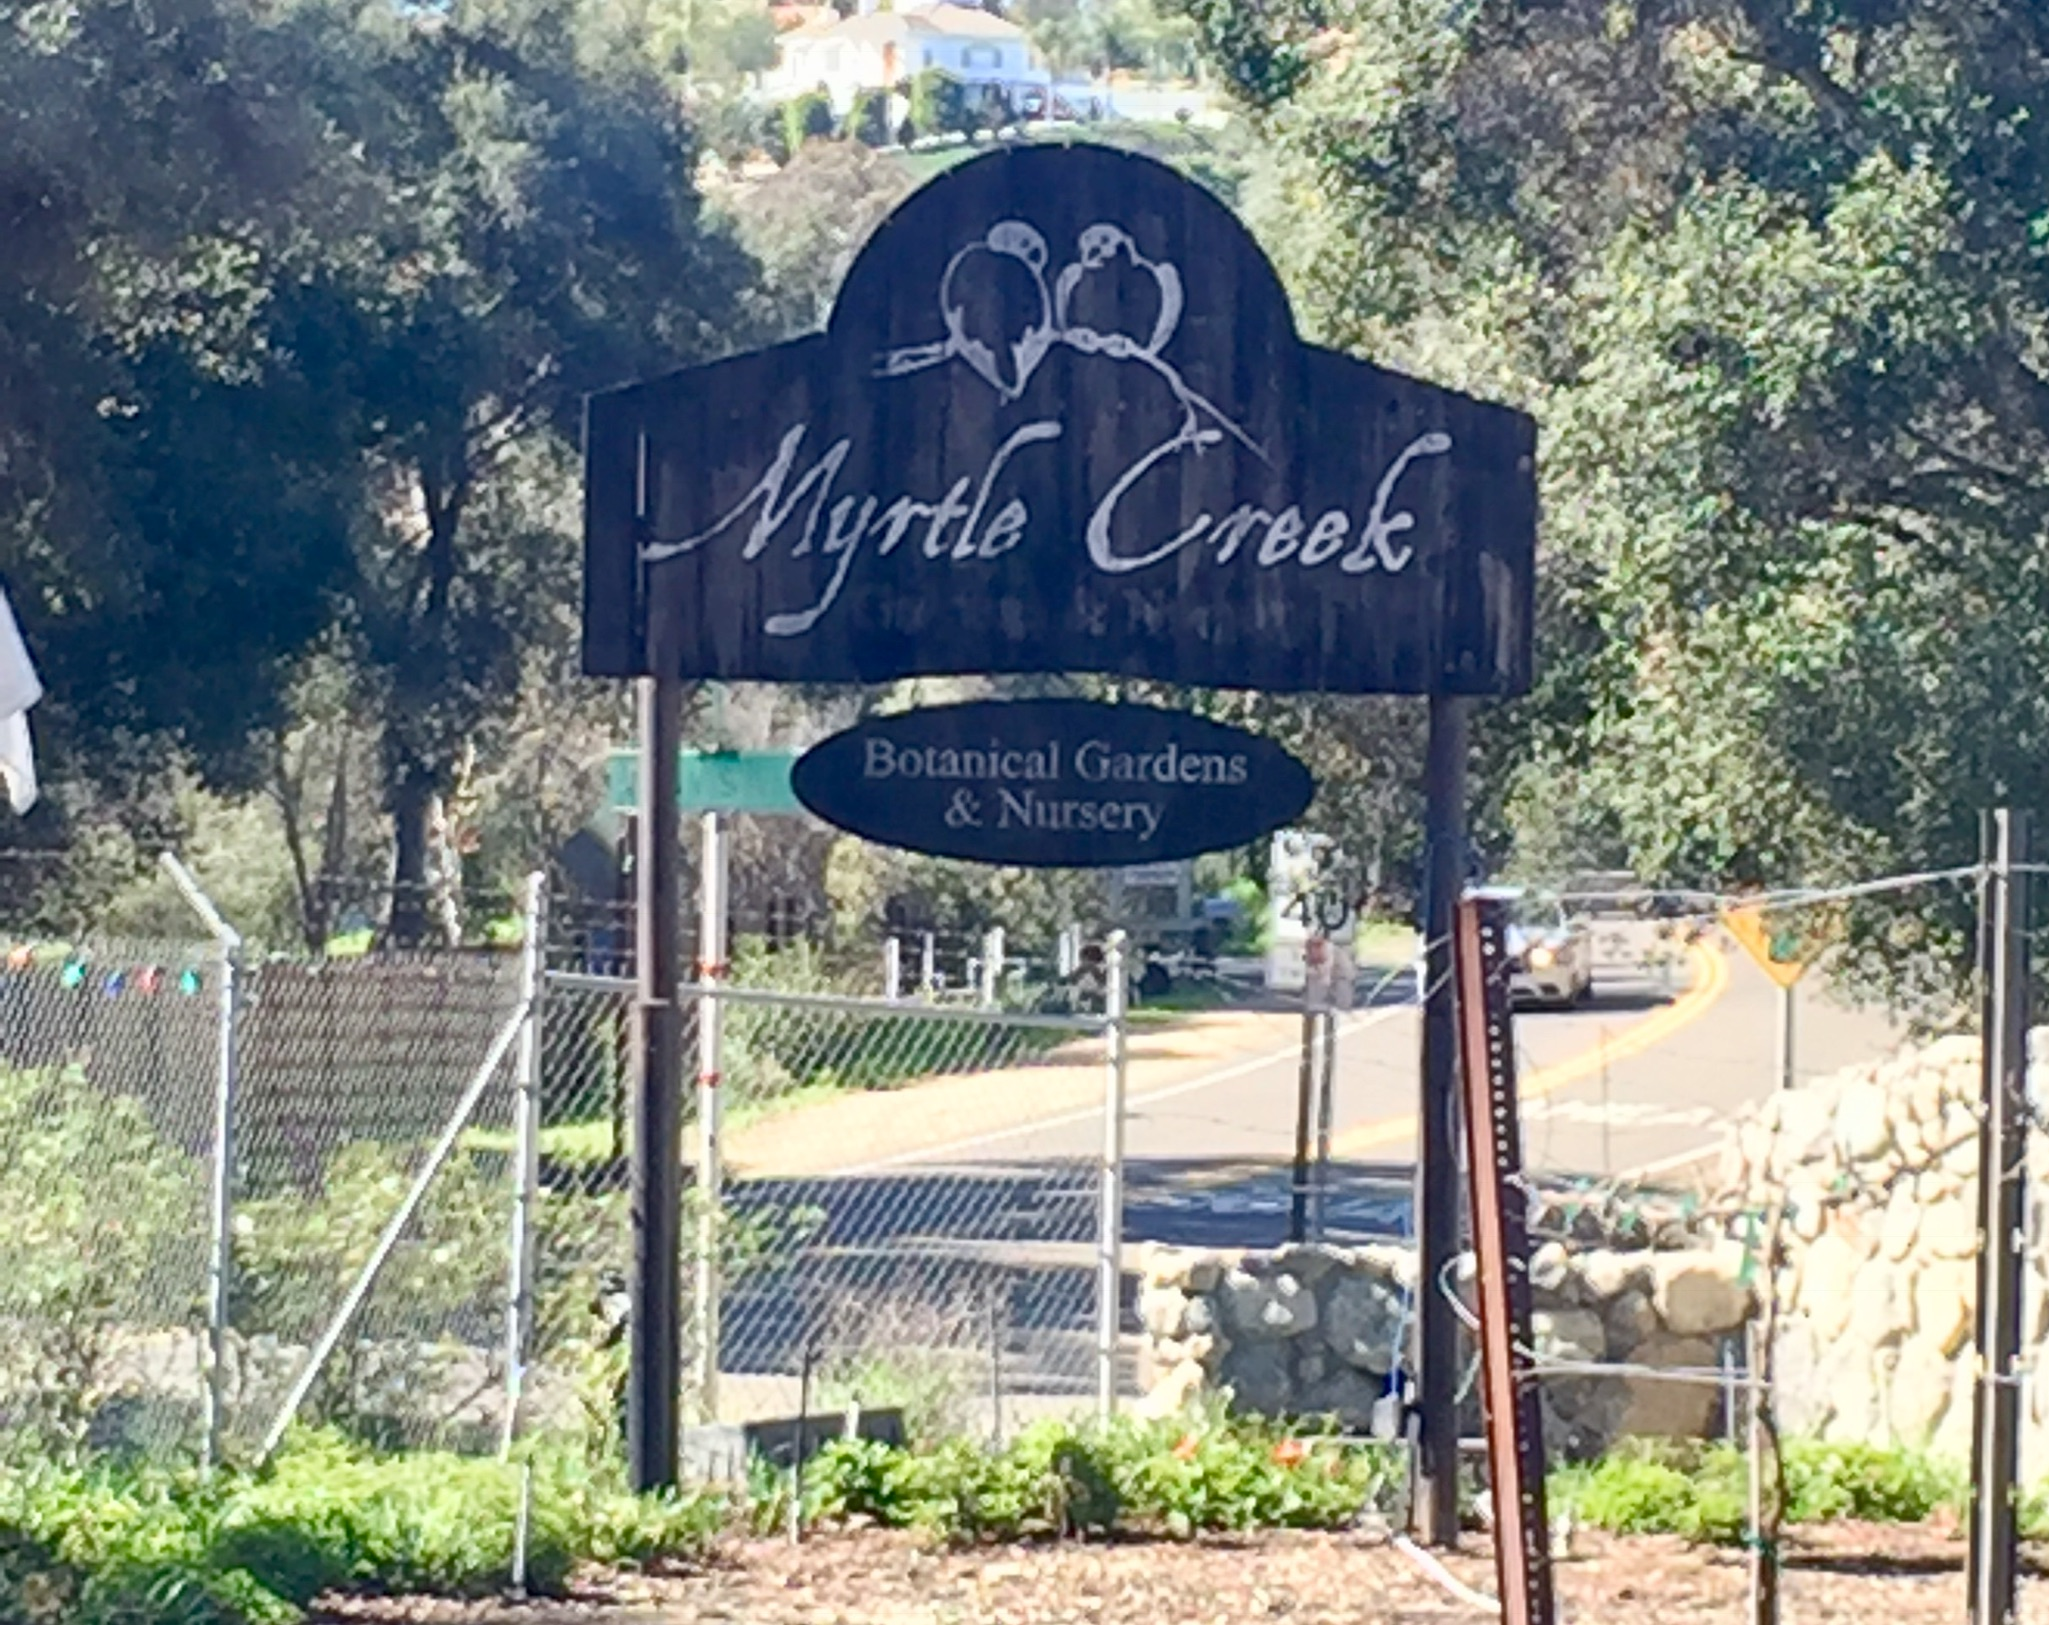 You are almost there, slow down when you see Myrtle Creek Nursery and start looking to your right.